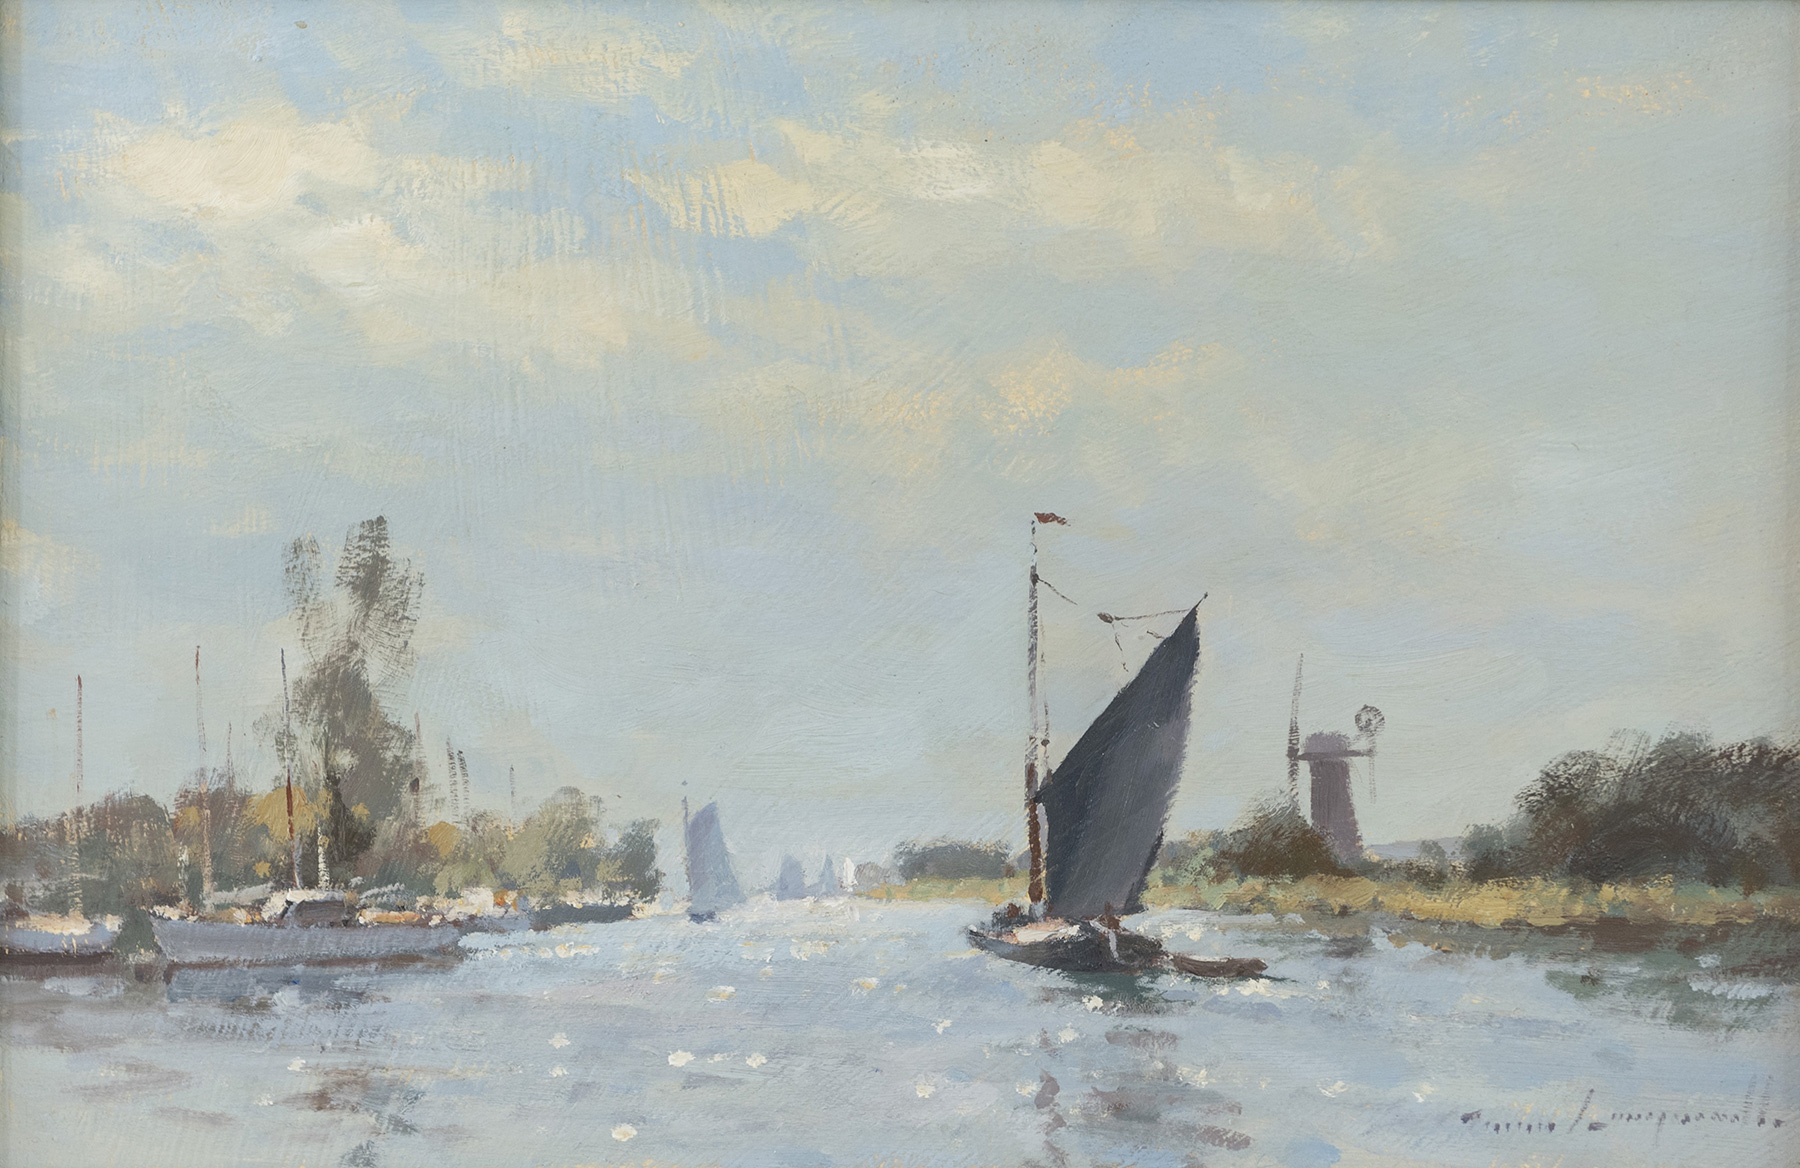 Sails on the Thurne